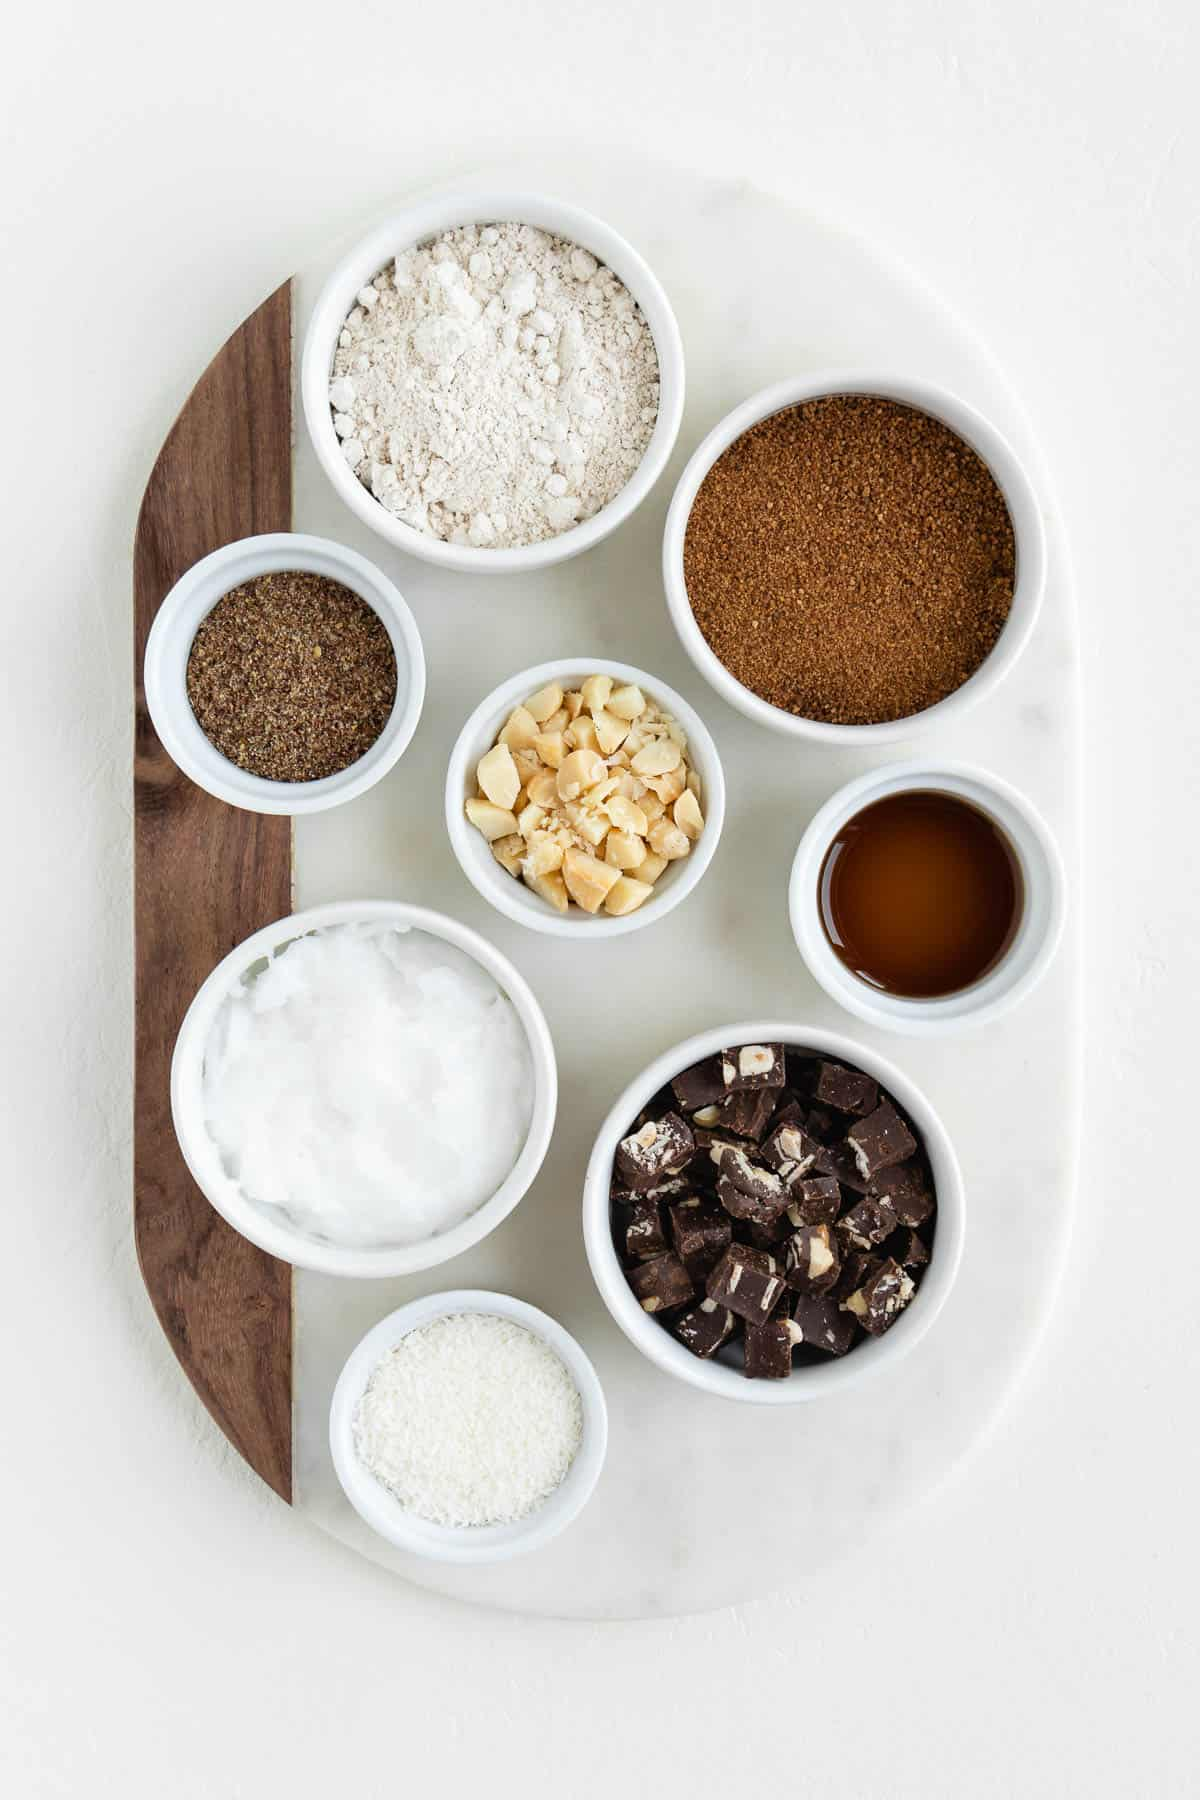 a marble board topped with bowls filled with flour, coconut sugar, shredded coconut, macadamia nuts, chocolate, coconut oil, and ground flaxseed